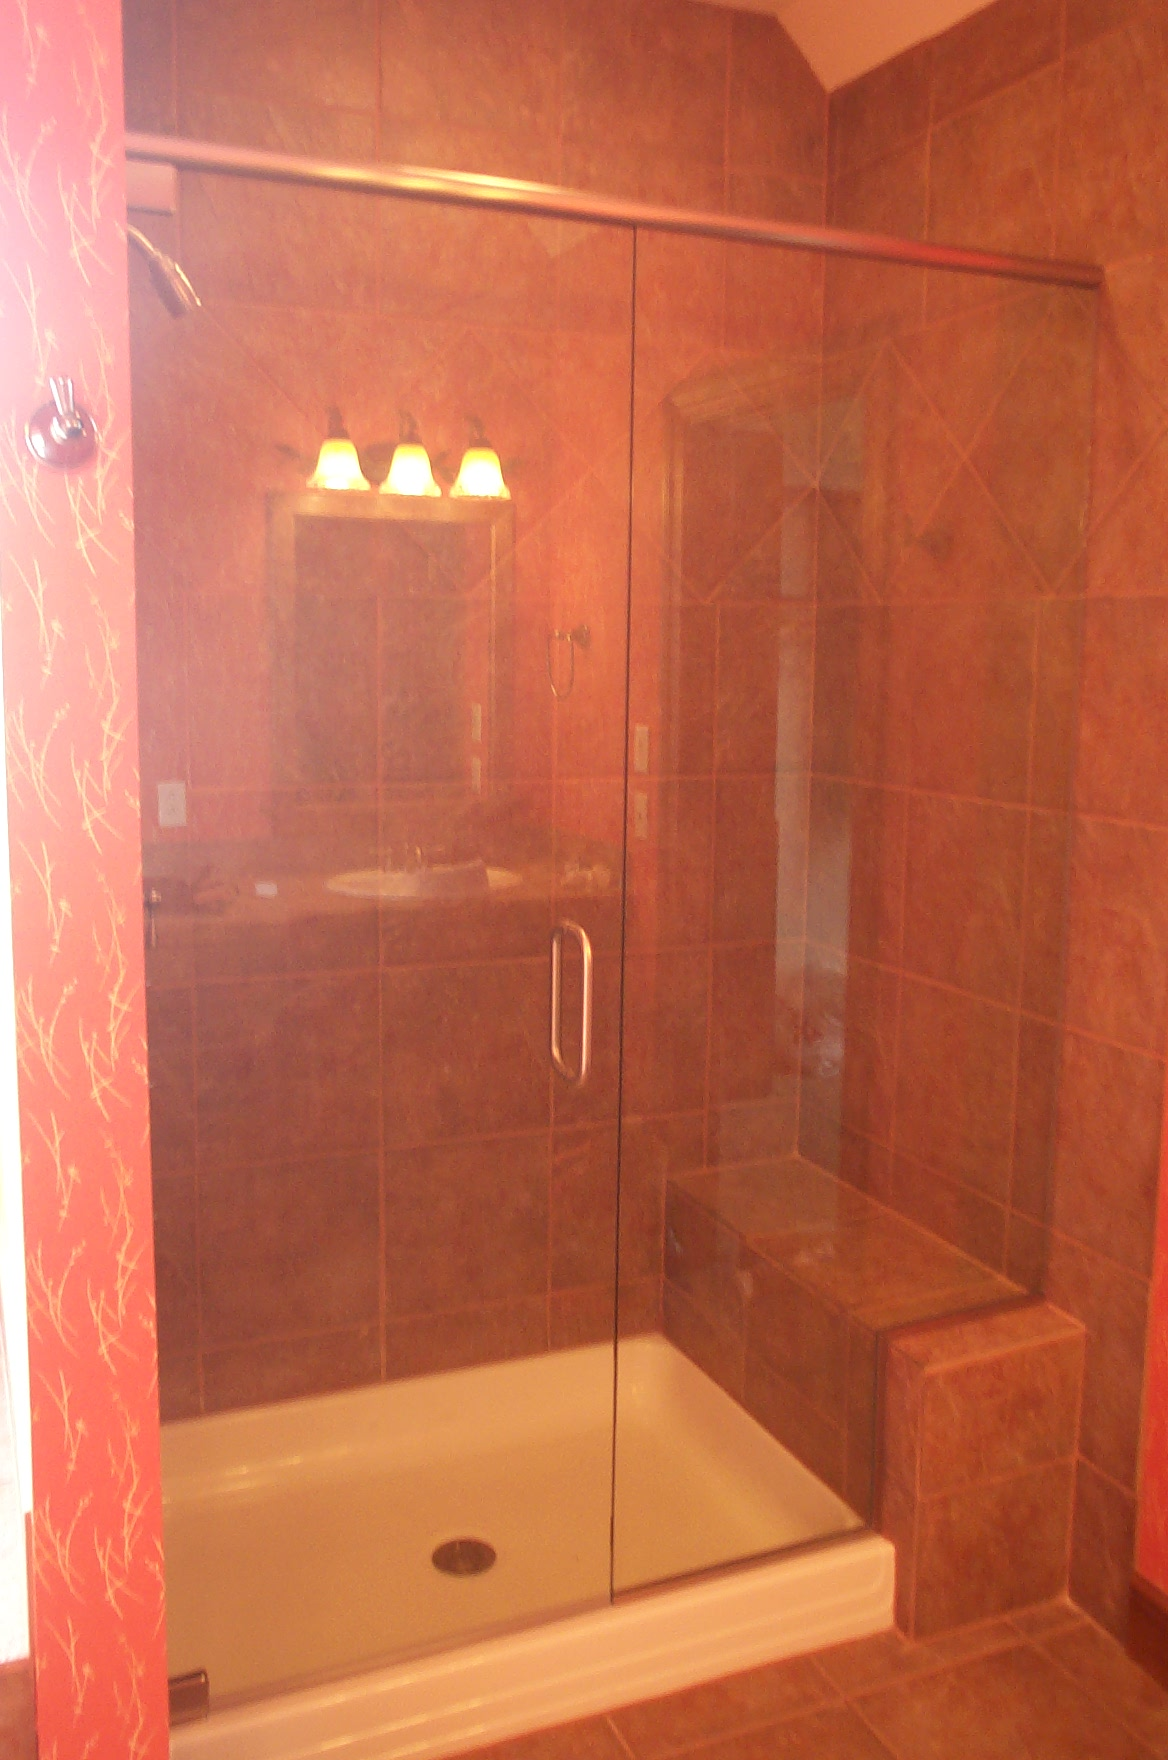 Frame-less Glass shower door with Chrome Hardware